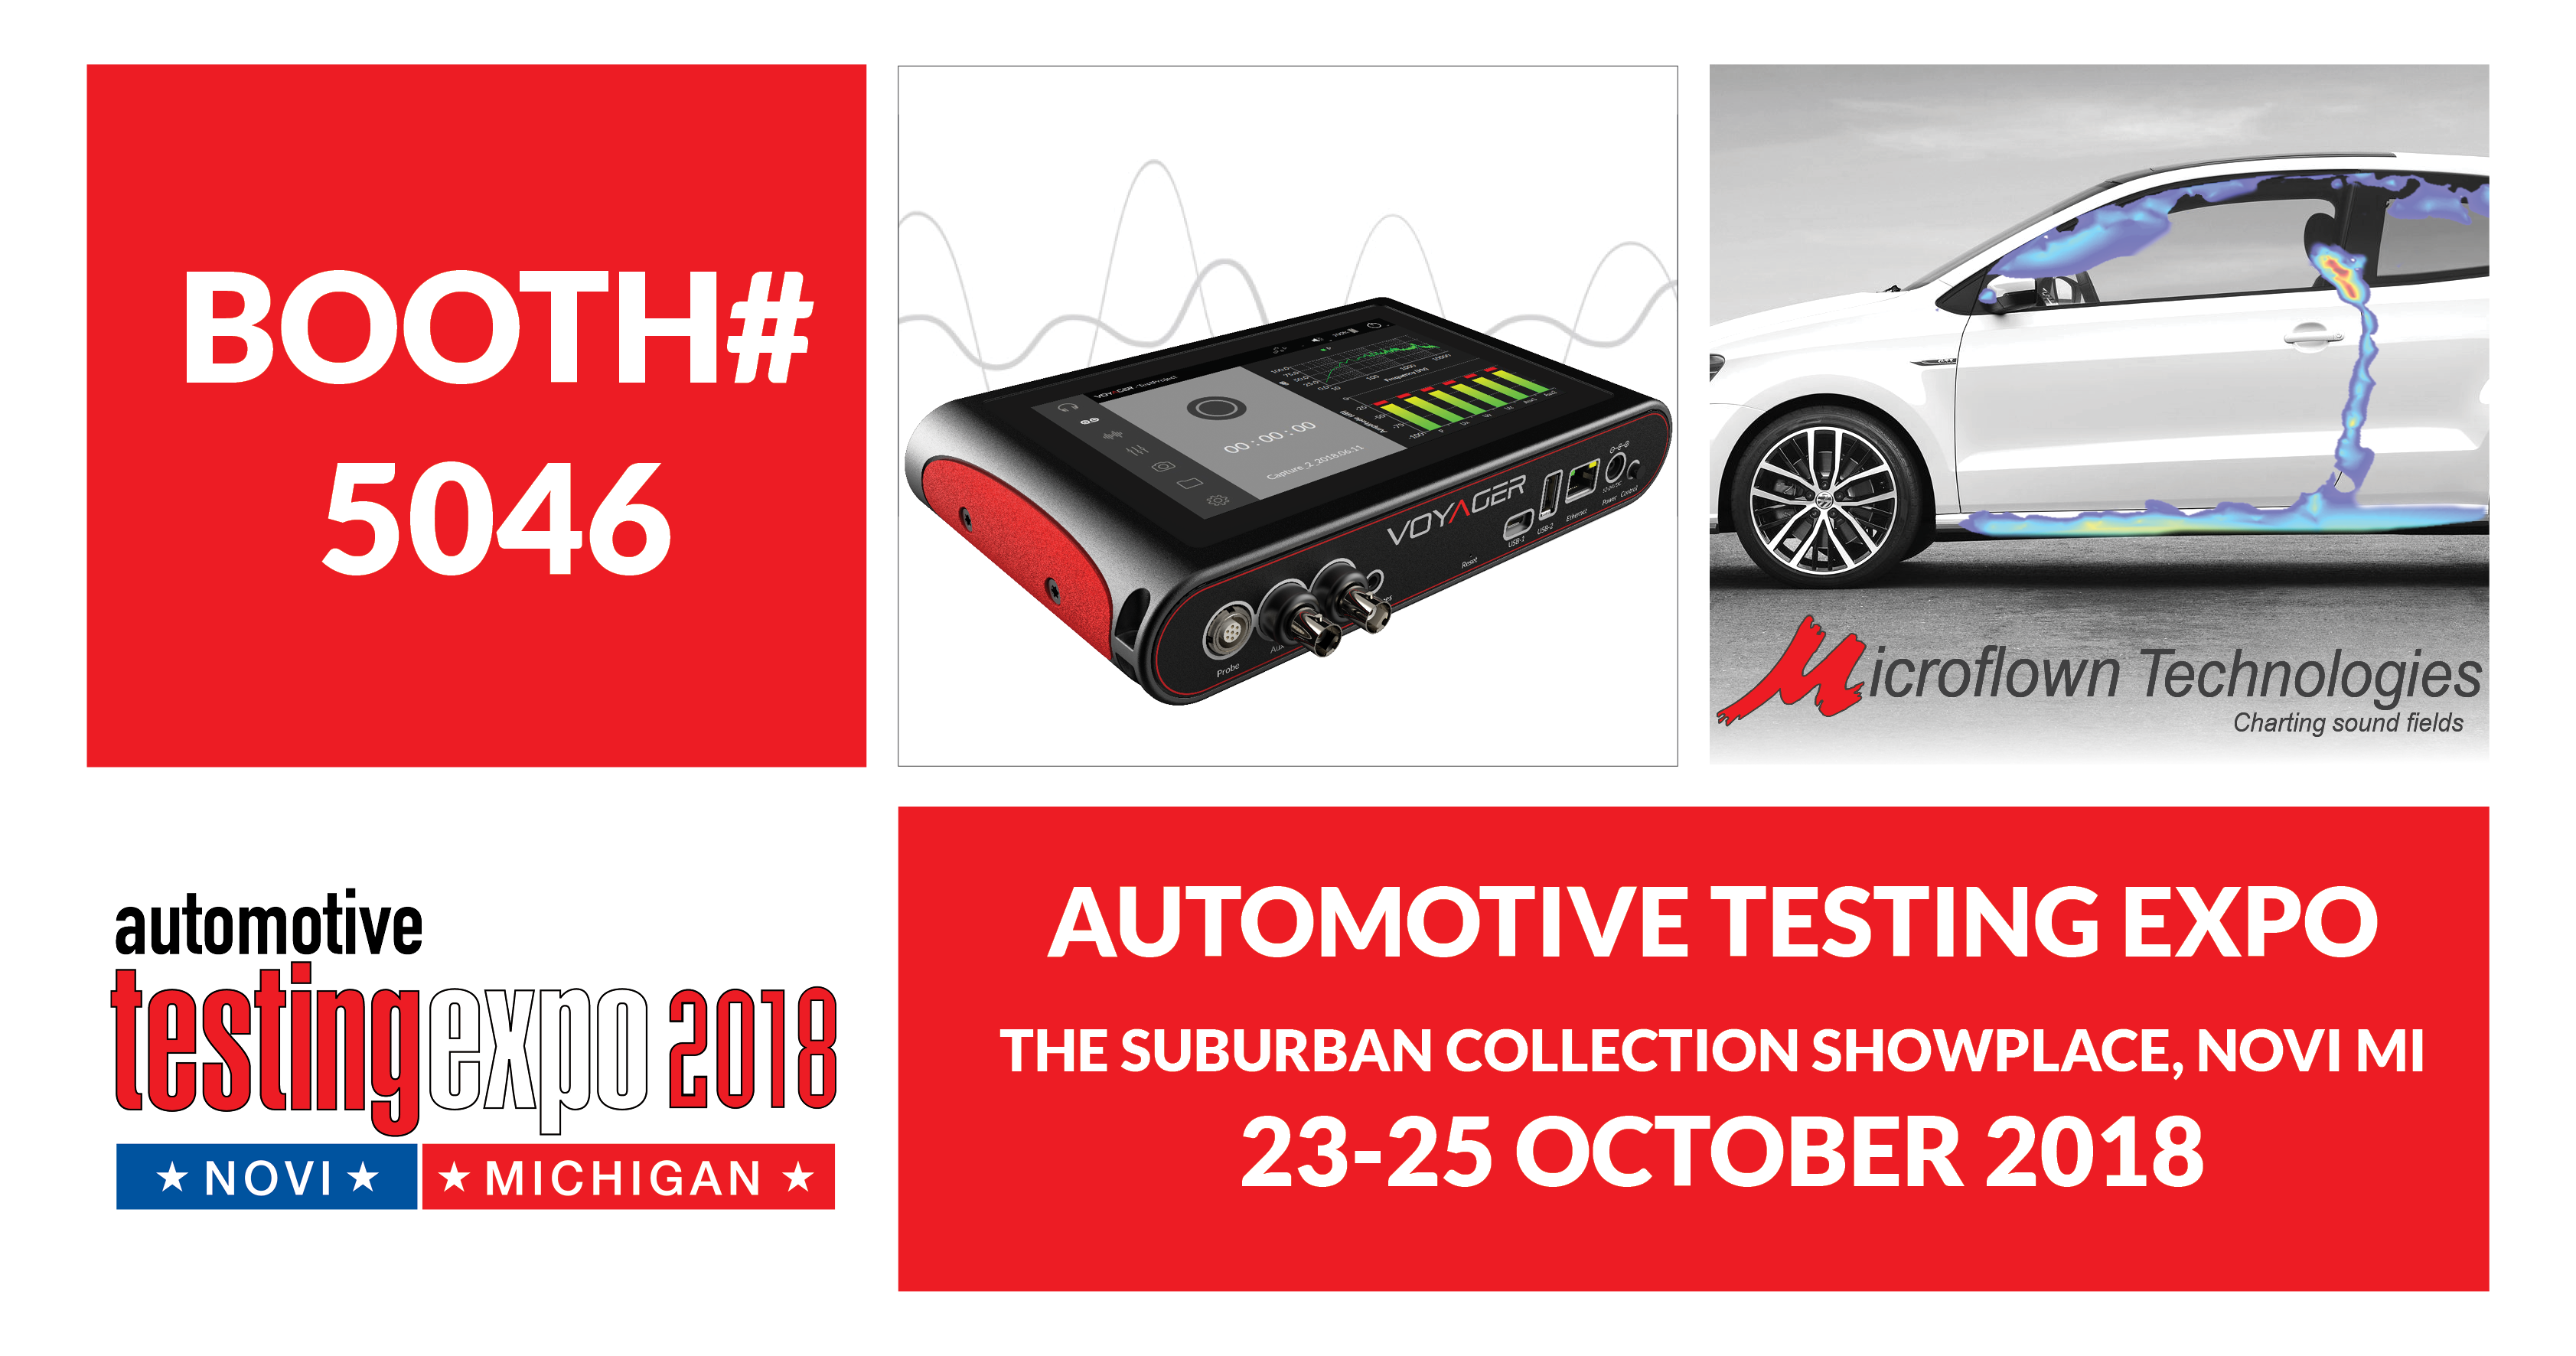 automotive_testing_expo_USA2018.png